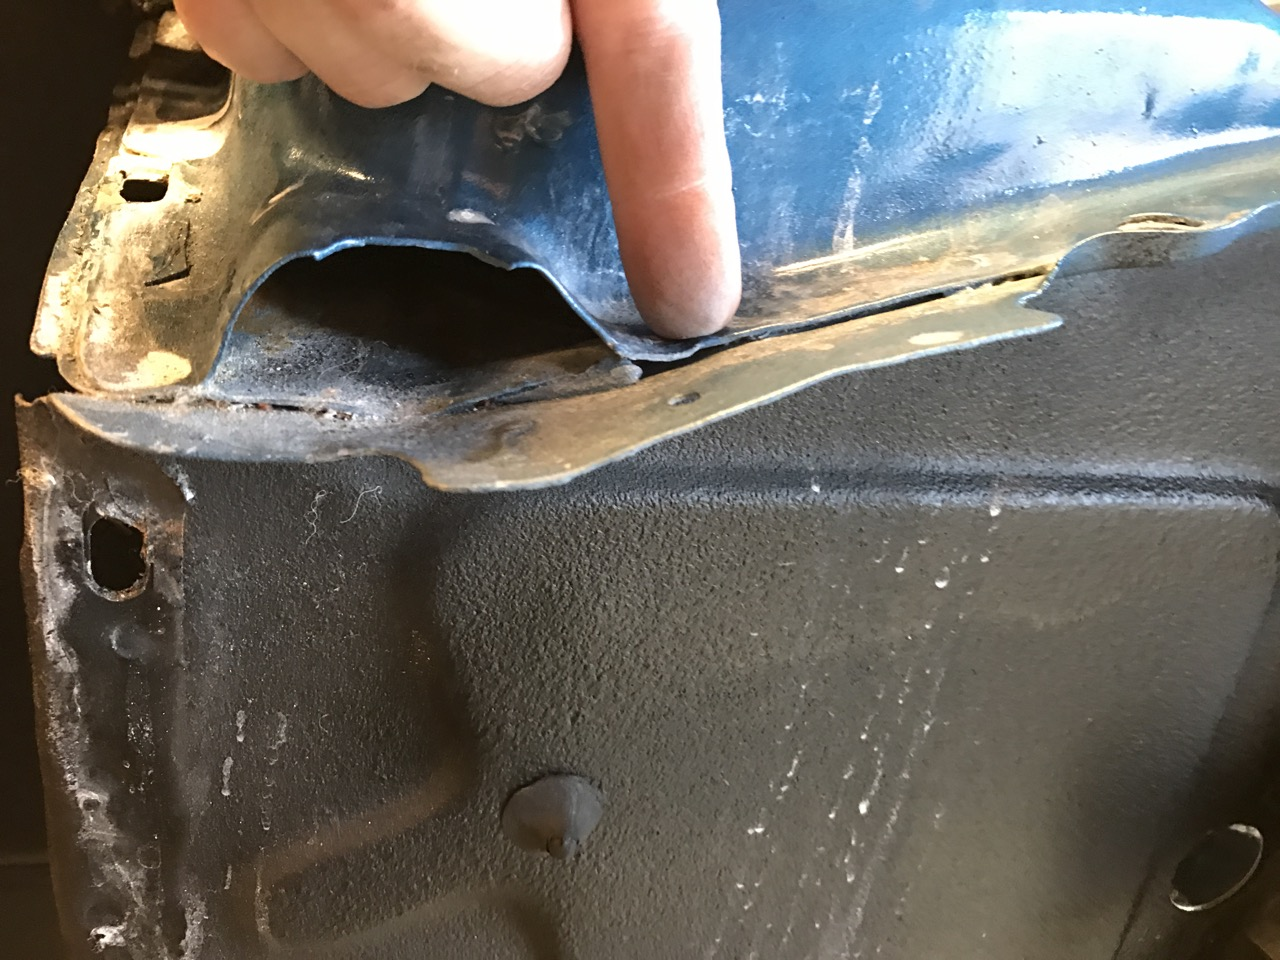 Seam Sealer Saves the Day